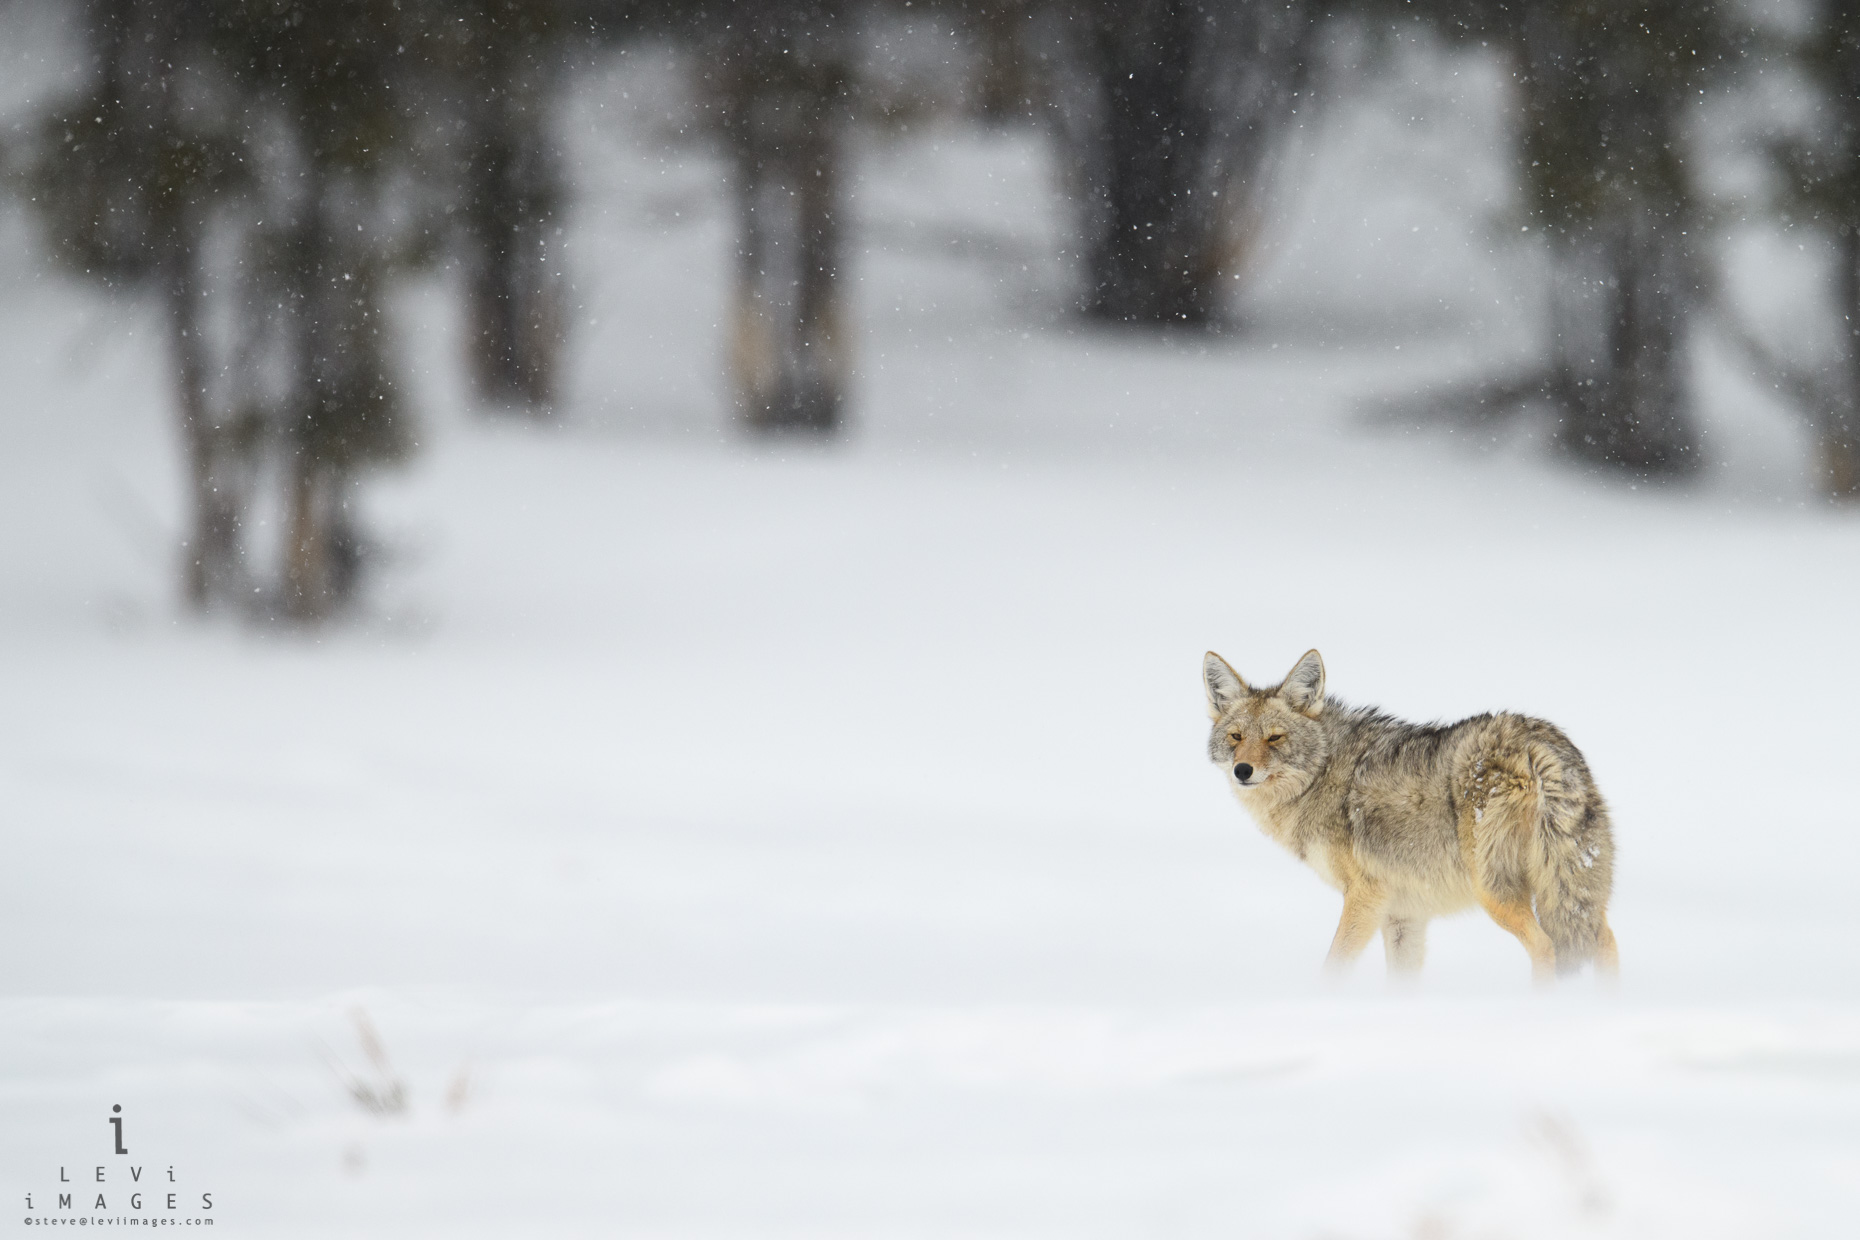 Coyote (Canis latrans) looks back during snowstorm. Yellowstone National Park, Wyoming